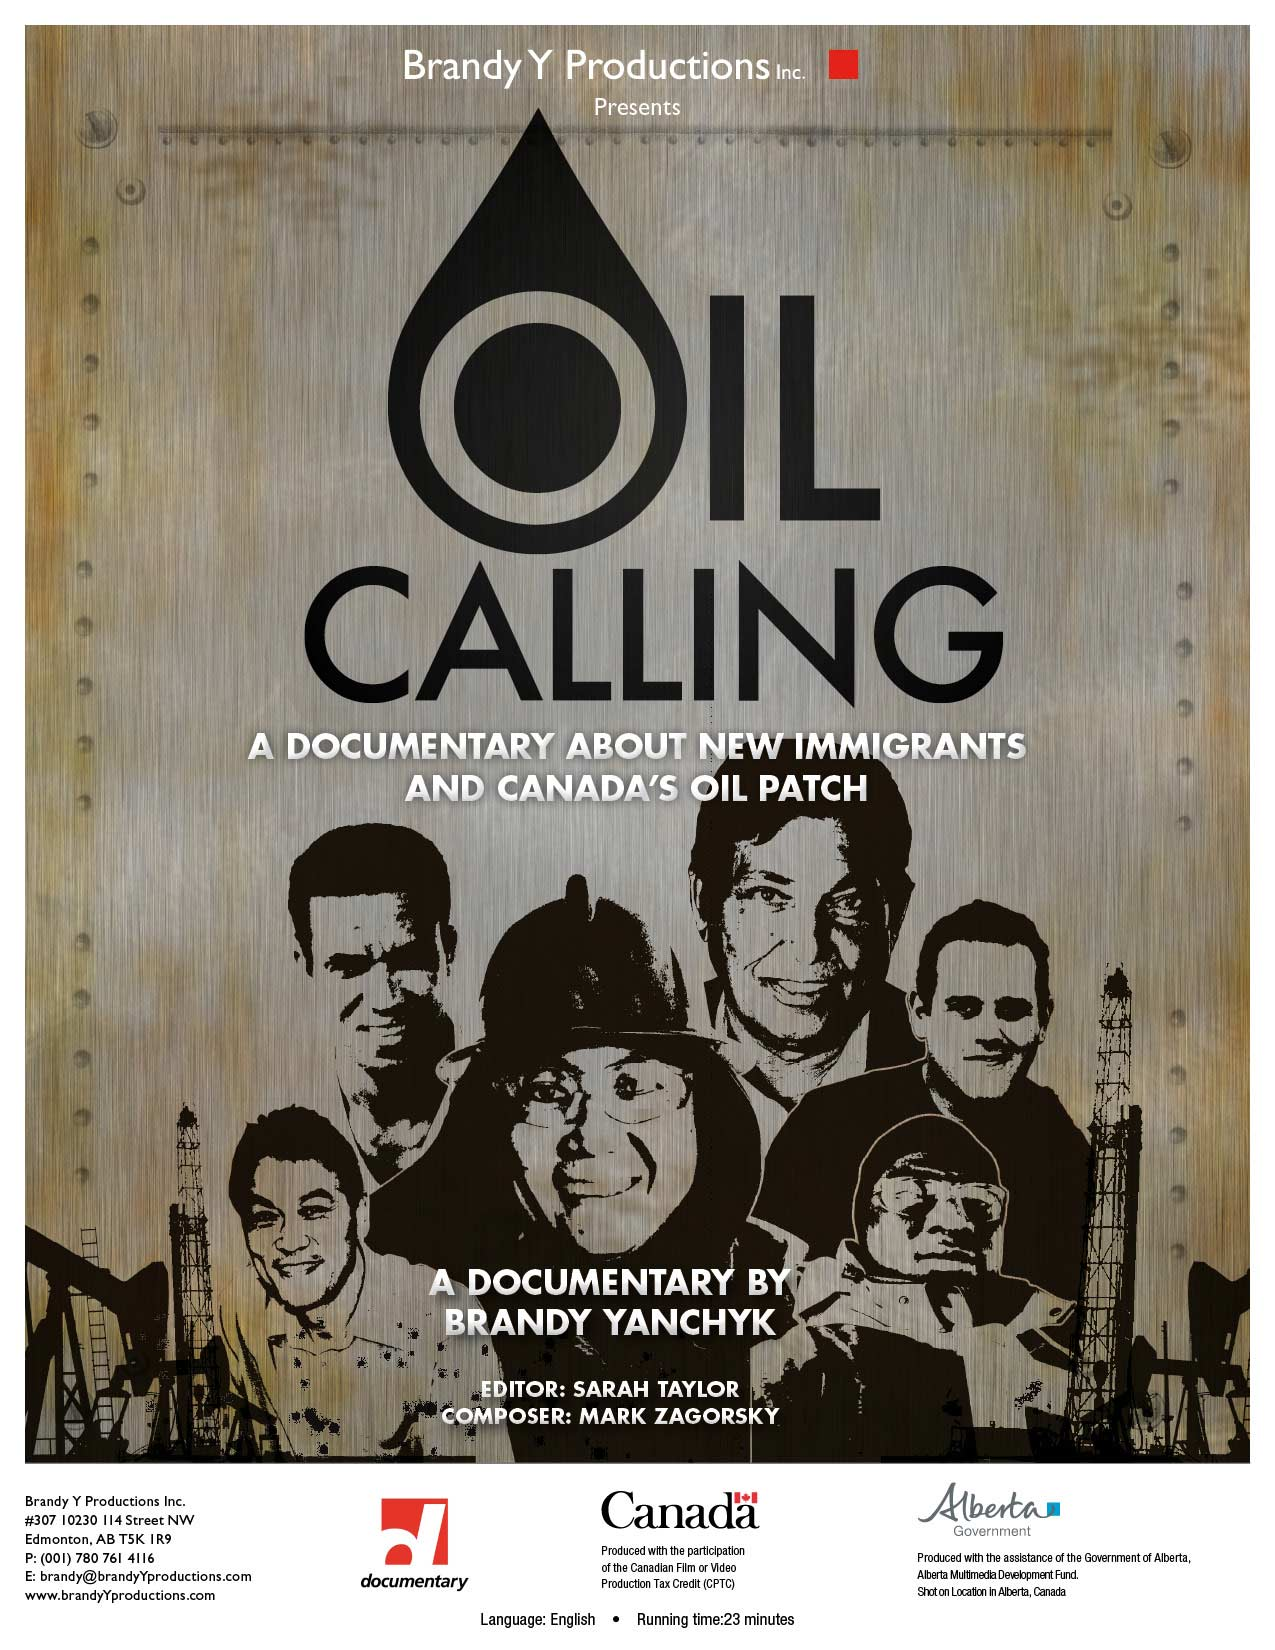 Oilcalling-posters-p4.jpg